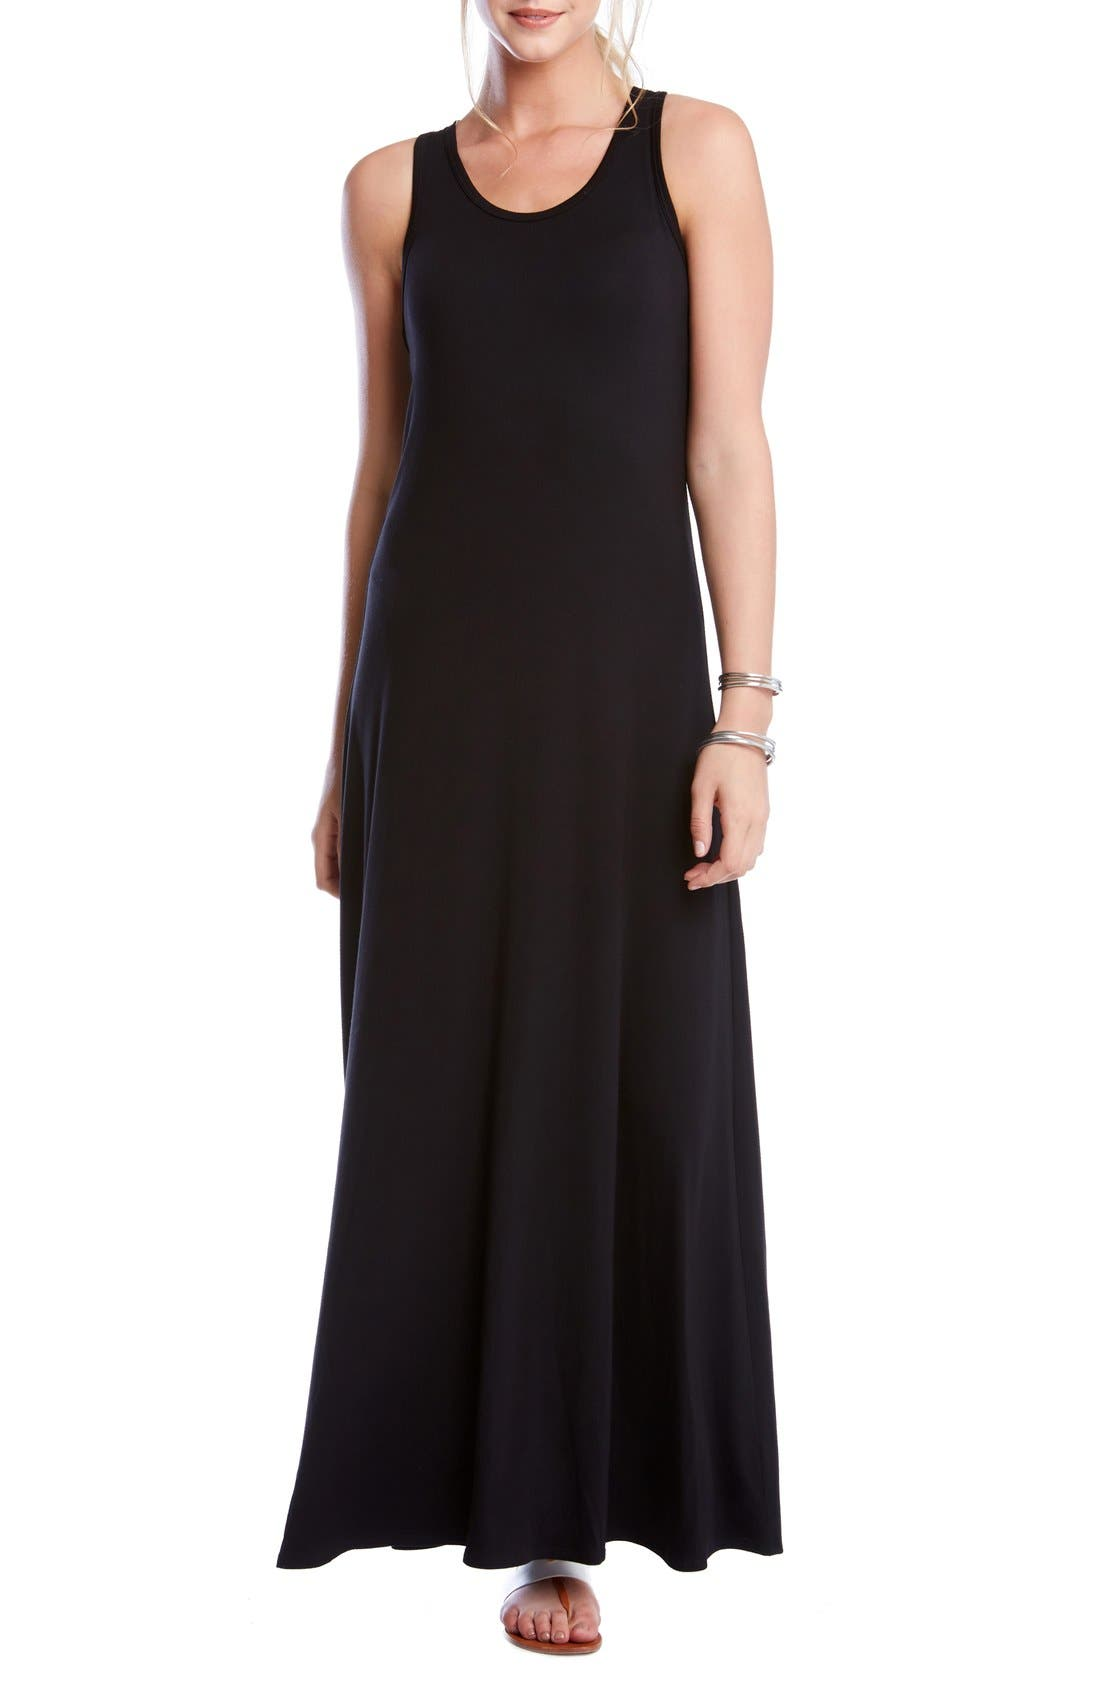 'Tasha' Racerback Jersey Maxi Dress,                             Main thumbnail 1, color,                             Black